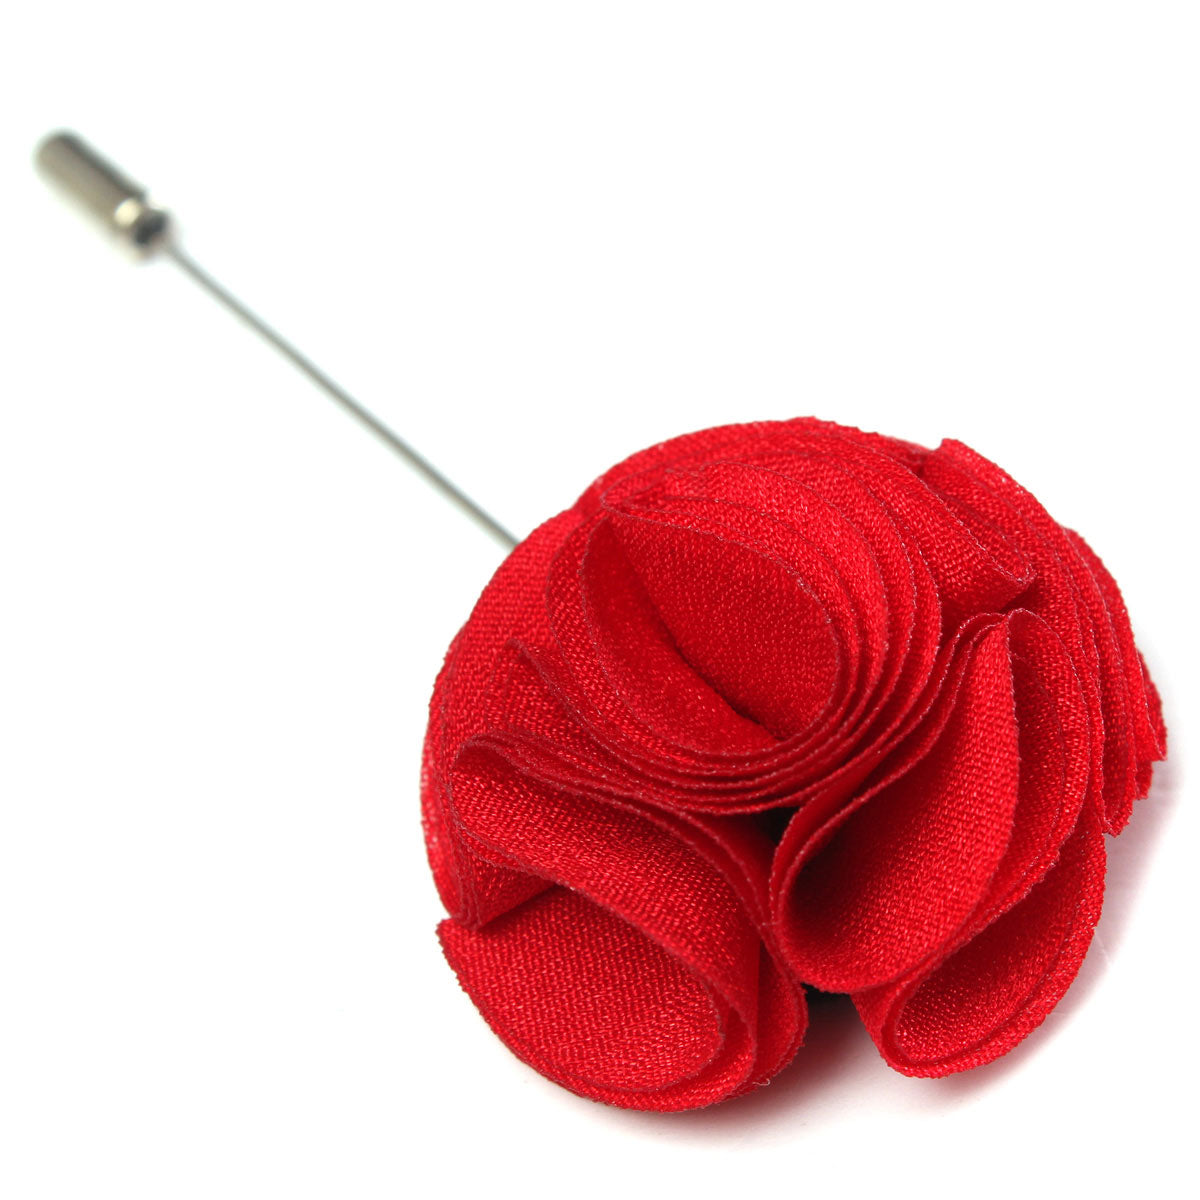 Handmade Fabric Lapel Boutonniere Brooch Pin Men's Accessories